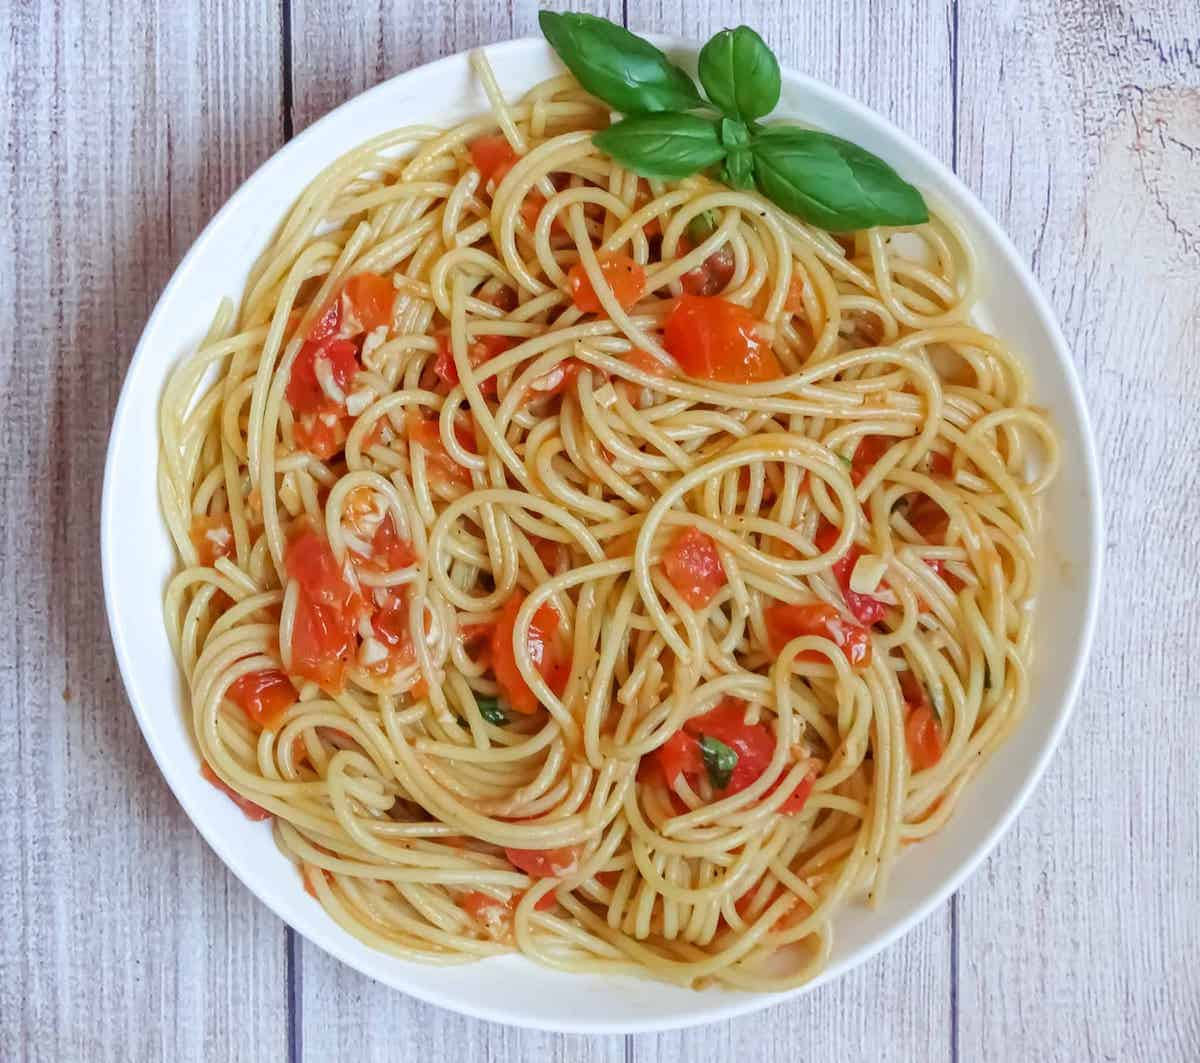 fresh tomato sauce with pasta and basil in a plate